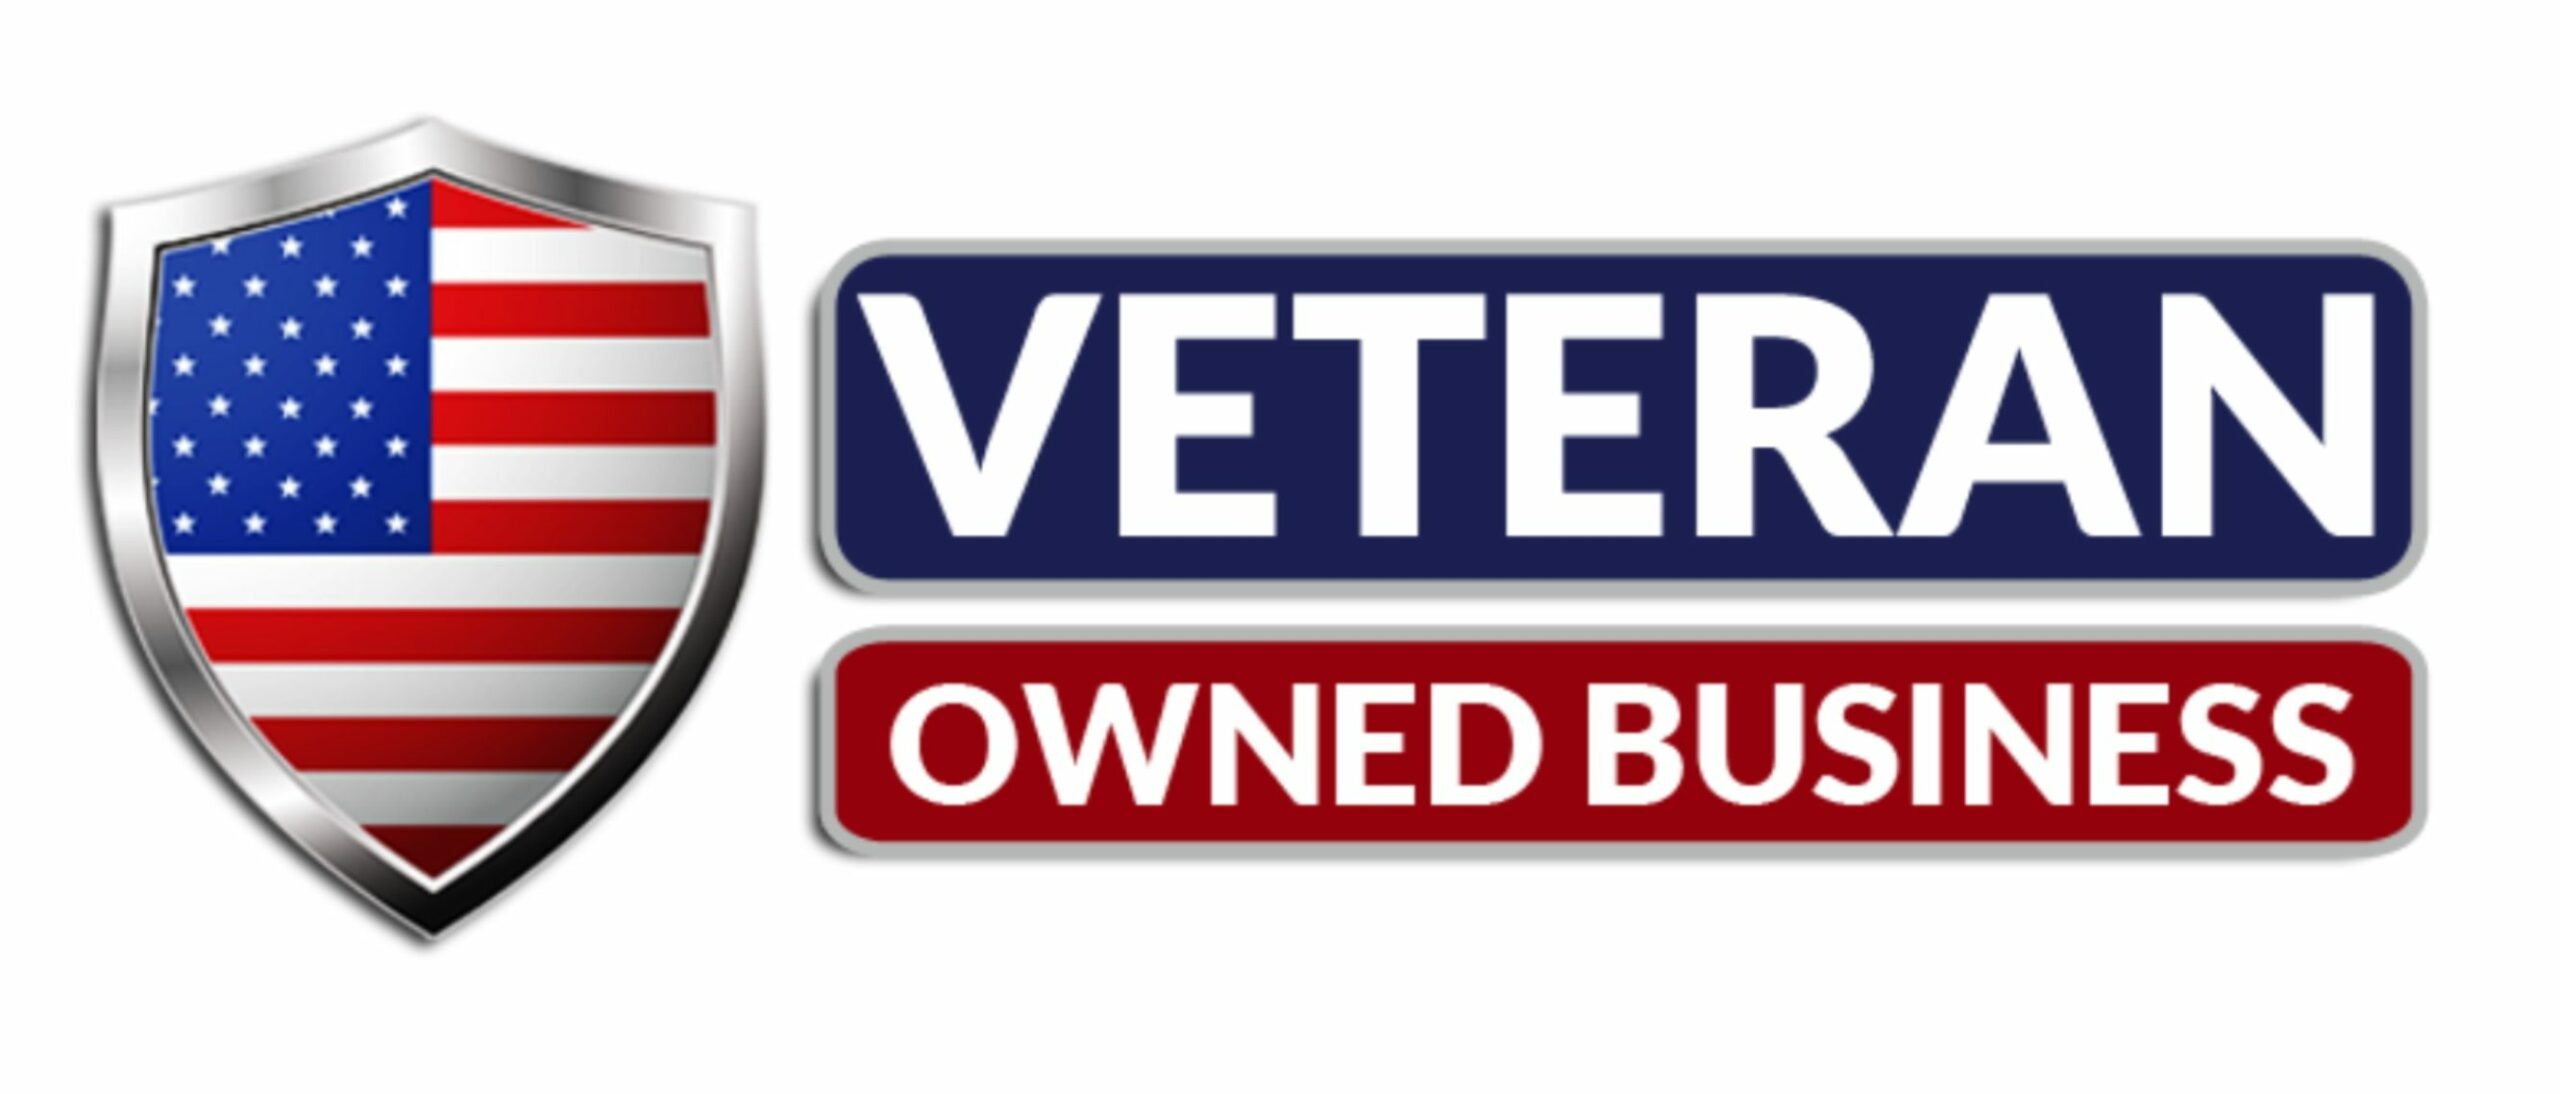 veteran-owned-business-logo-same-as-krueger-e1523570269938